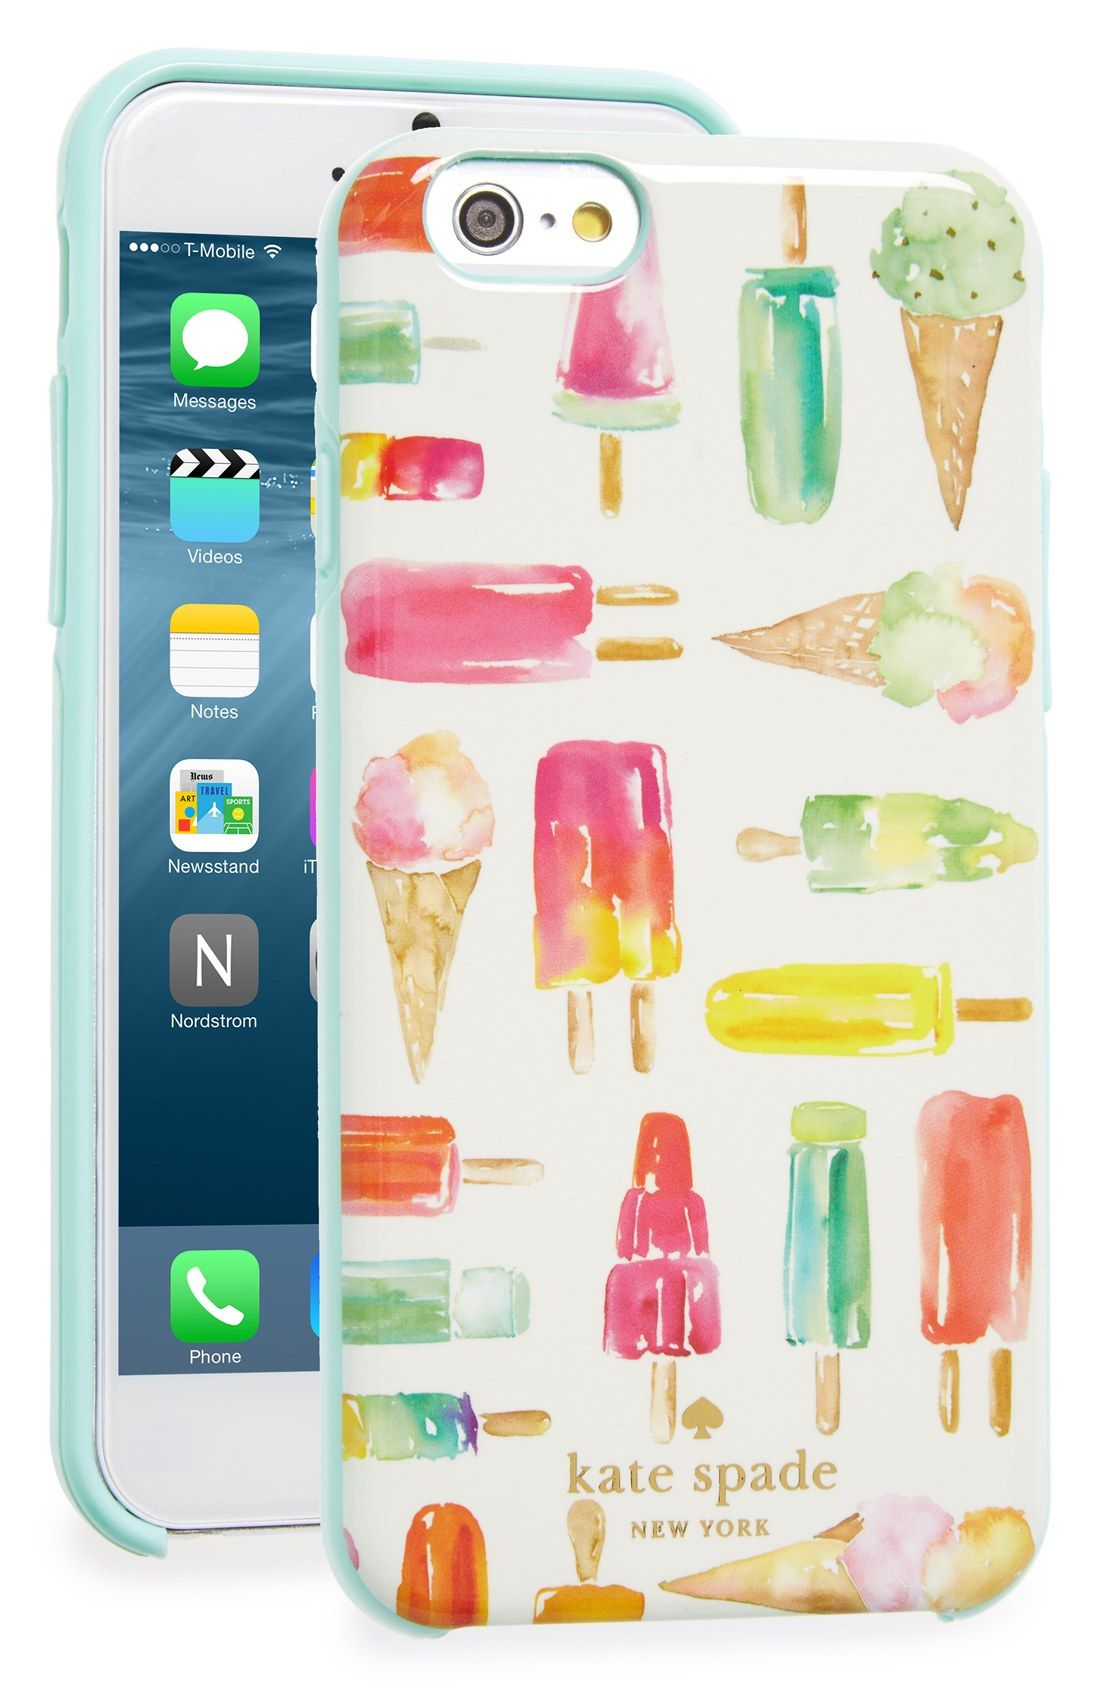 info for edda6 a4654 Obsessing over this colorful phone case from Kate Spade. The ice ...